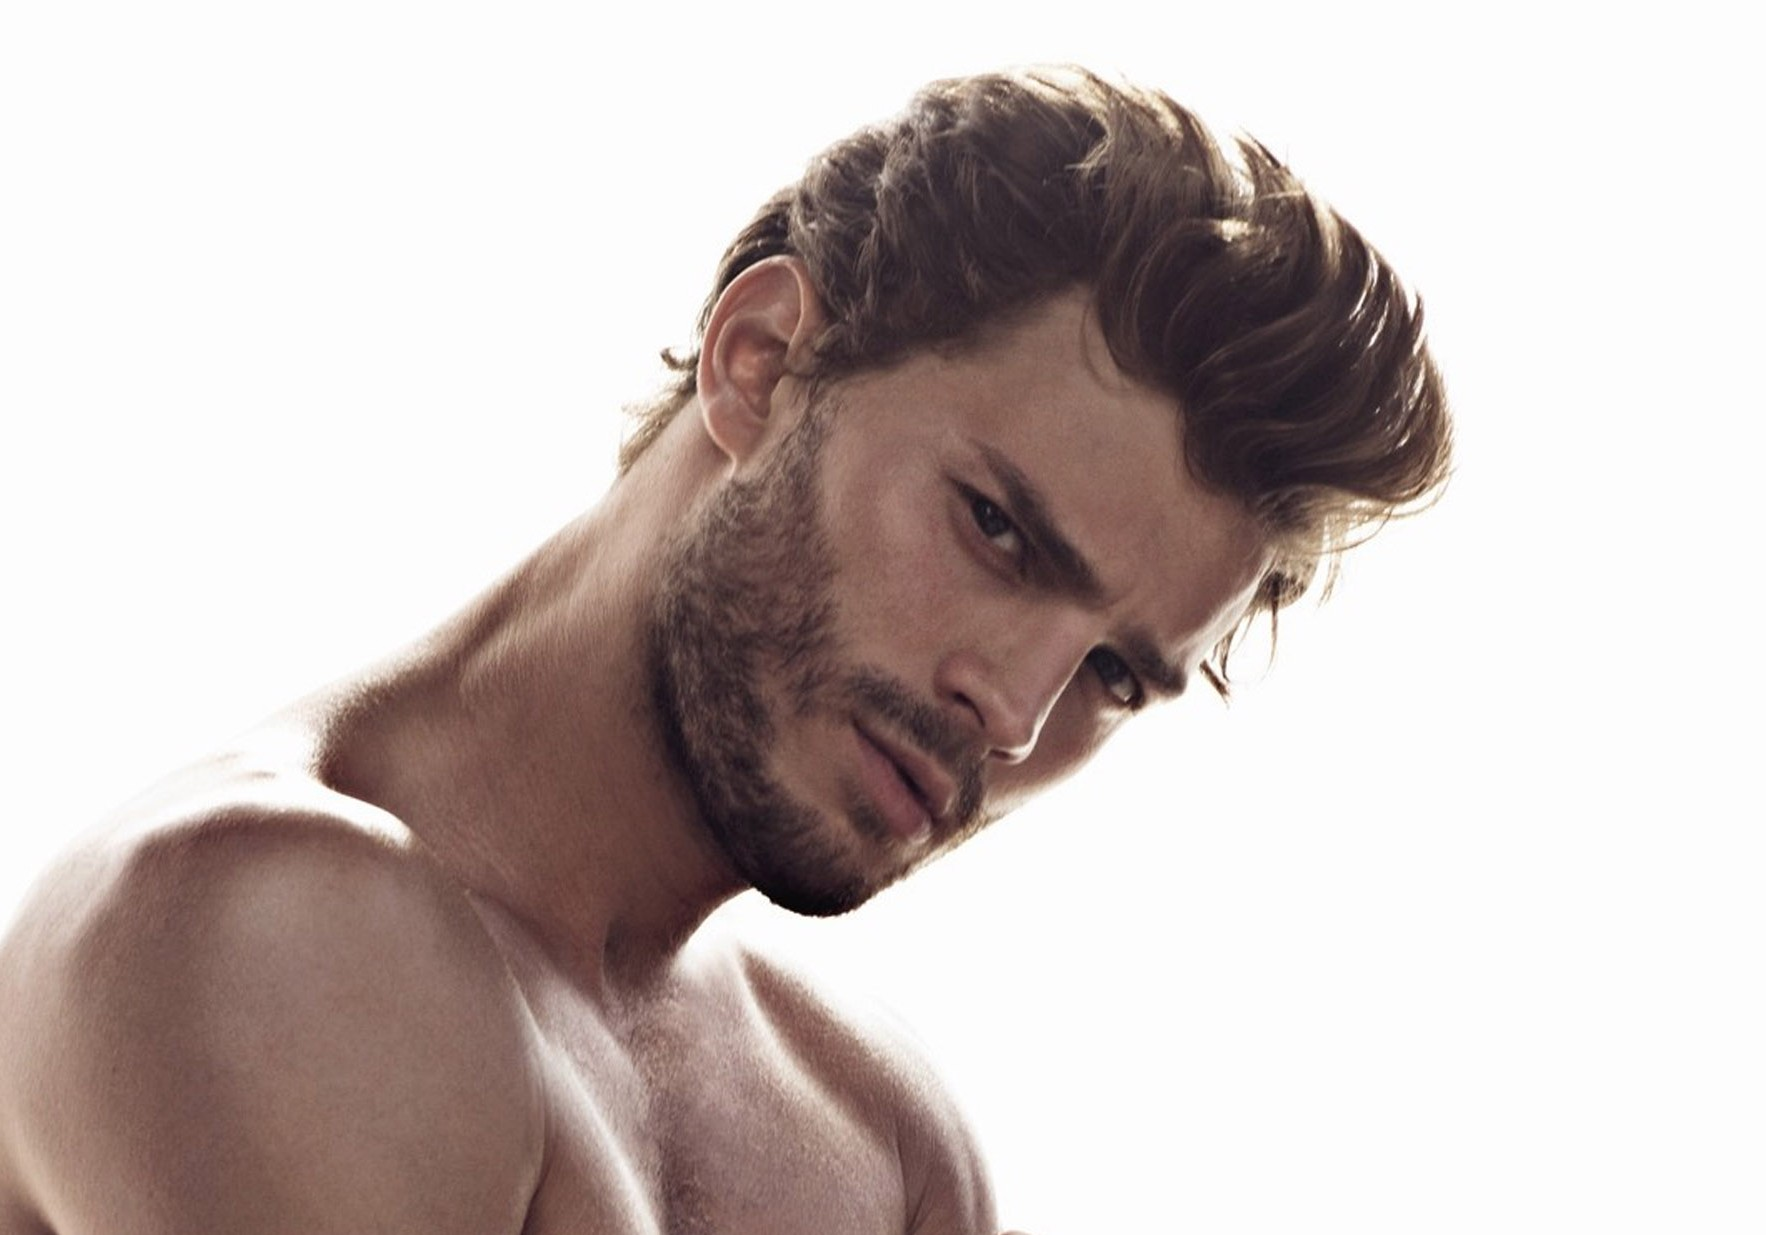 Fifty Shades of Grey fans 'pleased' with Jamie Dornan casting but still want Matt Bomer or Ian Somerhalder